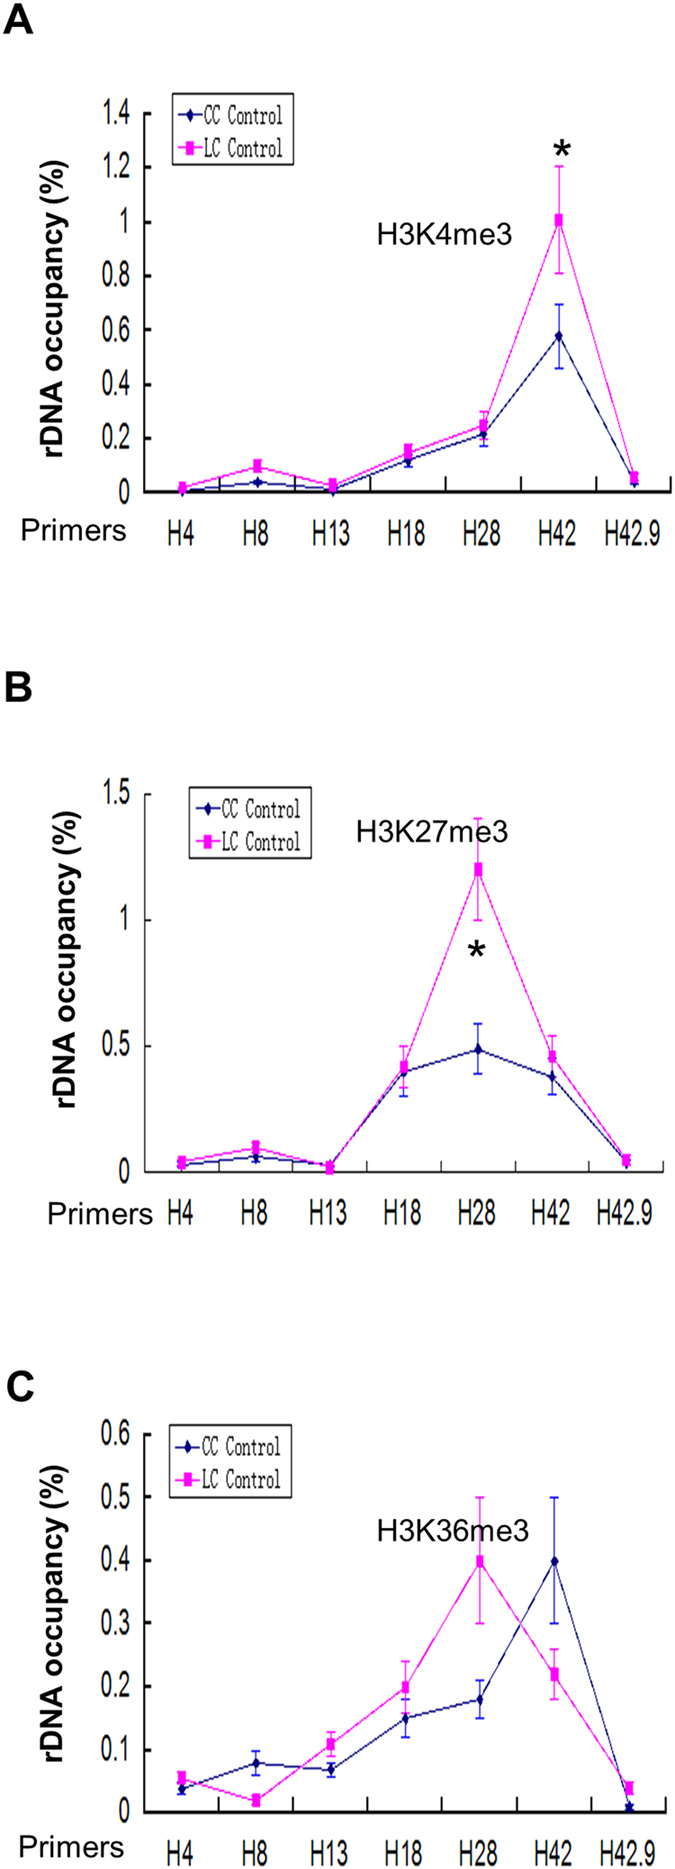 ChIP-QPCR for histone modifications (H3K4me3, H3K36me3 and H3K27ac) in human liver cancer cell (LC control) and normal liver cell (CC control). ( A ) Enrichment of H3K4me3 on rDNA analyzed by ChIP-QPCR. Chromatin from HepG2 cells was cross-linked and immunoprecipitated with H3K4me3 antibody, DNA was analyzed by QPCR with different sets of primers indicated in ( A ). The percentage of DNA associated with anti-H3K4me3 antibody was calculated relative to the DNA from ChIP input. Values are represented by means ± SD from three independent ChIP experiments, each experiment was tested by at least three independent QPCR reactions. ( B ) Enrichment of H3K27me3 on rDNA analyzed by ChIP-QPCR. Chromatin from HepG2 cells was cross-linked and immunoprecipitated with H3K27me3 antibody, DNA was analyzed by QPCR with different sets of primers indicated in ( A ). The percentage of DNA associated with anti-H3K27me3 antibody was calculated relative to the DNA from ChIP input. Values are represented by means ± SD from three independent ChIP experiments, each experiment was tested by at least three independent QPCR reactions. Student's t-test was performed between human liver cancer cell (LC Control) and normal liver cell (CC Control). ( C ) Enrichment of H3K36me3 on rDNA analyzed by ChIP-QPCR. Chromatin from HepG2 cells was cross-linked and immunoprecipitated with H3K27me3 antibody, DNA was analyzed by QPCR with different sets of primers indicated in ( A ). The percentage of DNA associated with anti-H3K36me3 antibody was calculated relative to the DNA from ChIP input. Values are represented by means ± SD derived from three independent ChIP experiments, each experiment was tested by at least three independent QPCR reactions. Student's t-test was performed between human liver cancer cell (LC Control) and normal liver cell (CC Control).